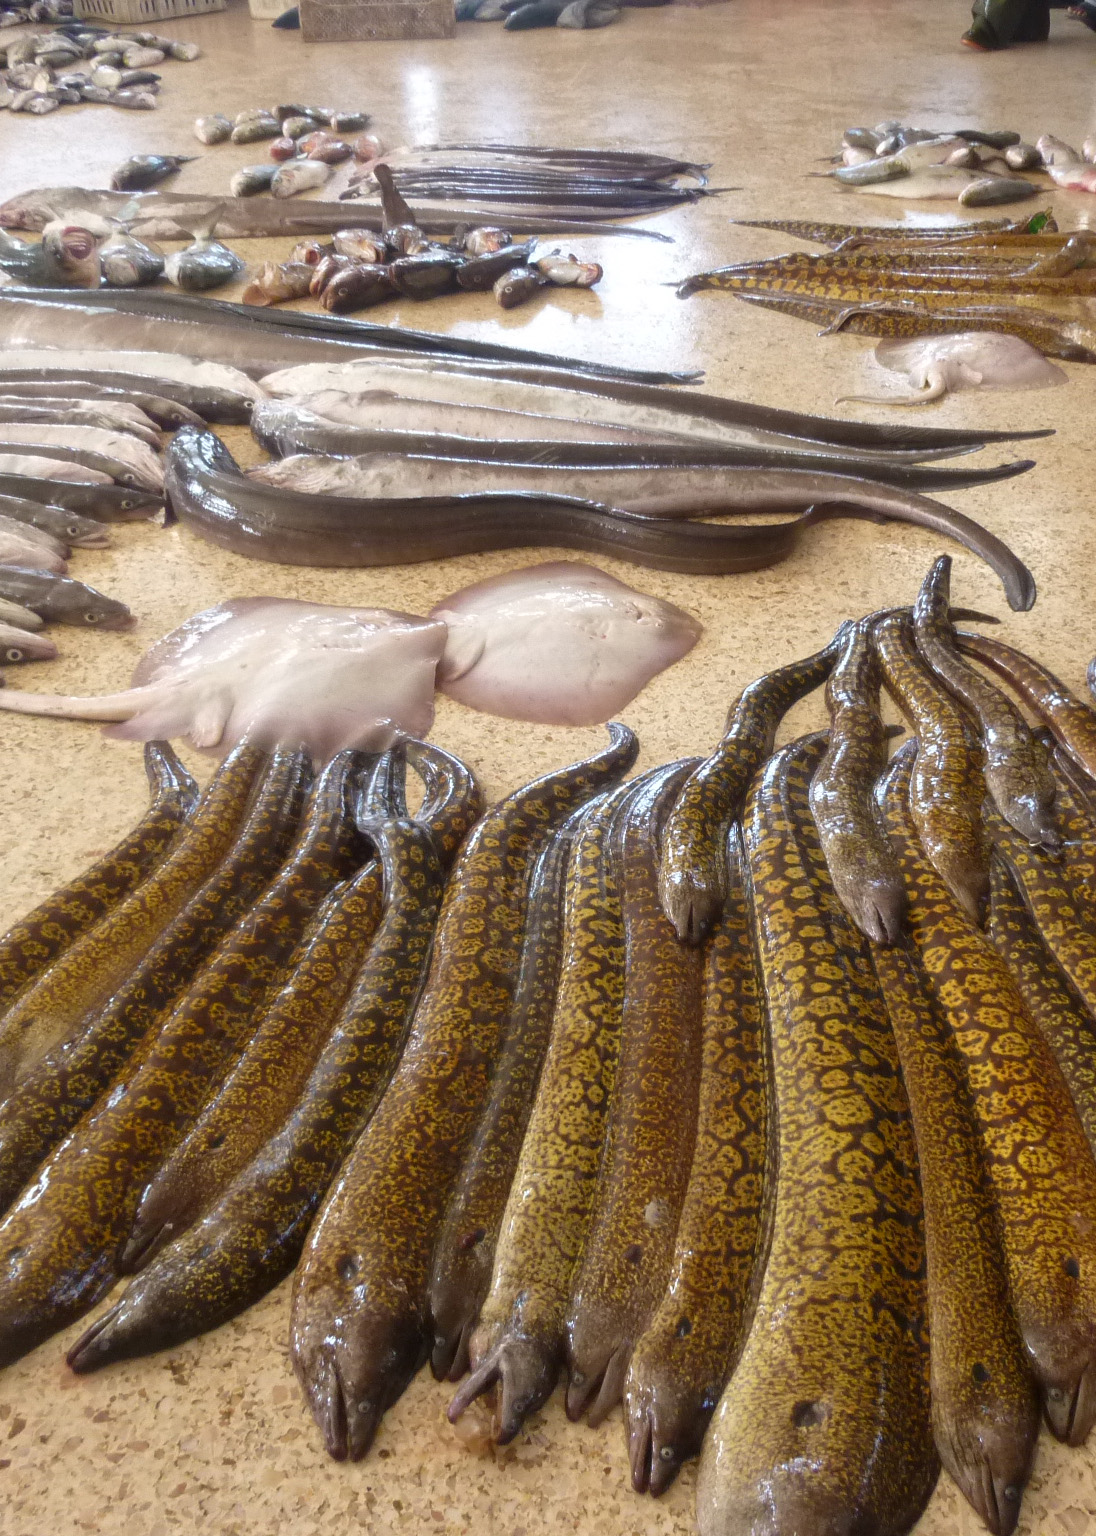 Fish Market Imsouanne Morocco| The Spot Morocco,Taghazout, surf Morocco, where to surf in Morocco, surf camp Morocco, surfing Morocco, Morocco surf